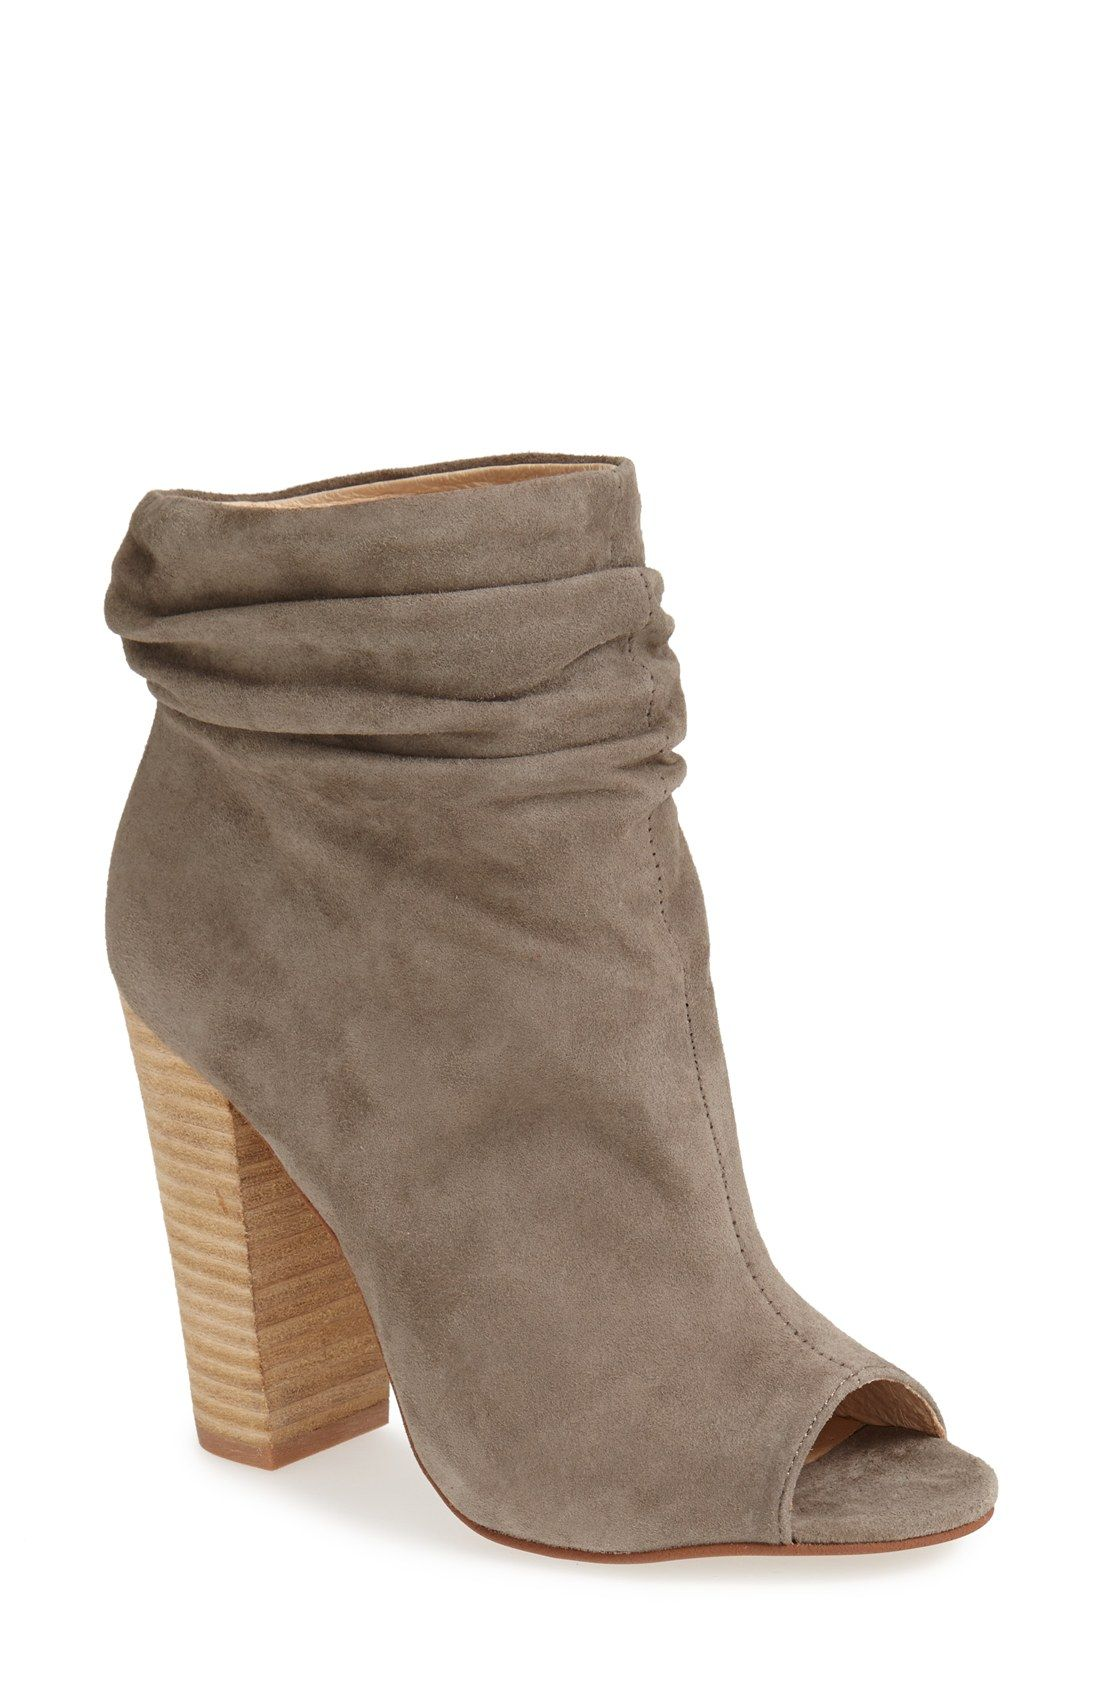 Gentle ruching gives a stylishly slouchy look to this on-trend bootie with a flirty peep toe.